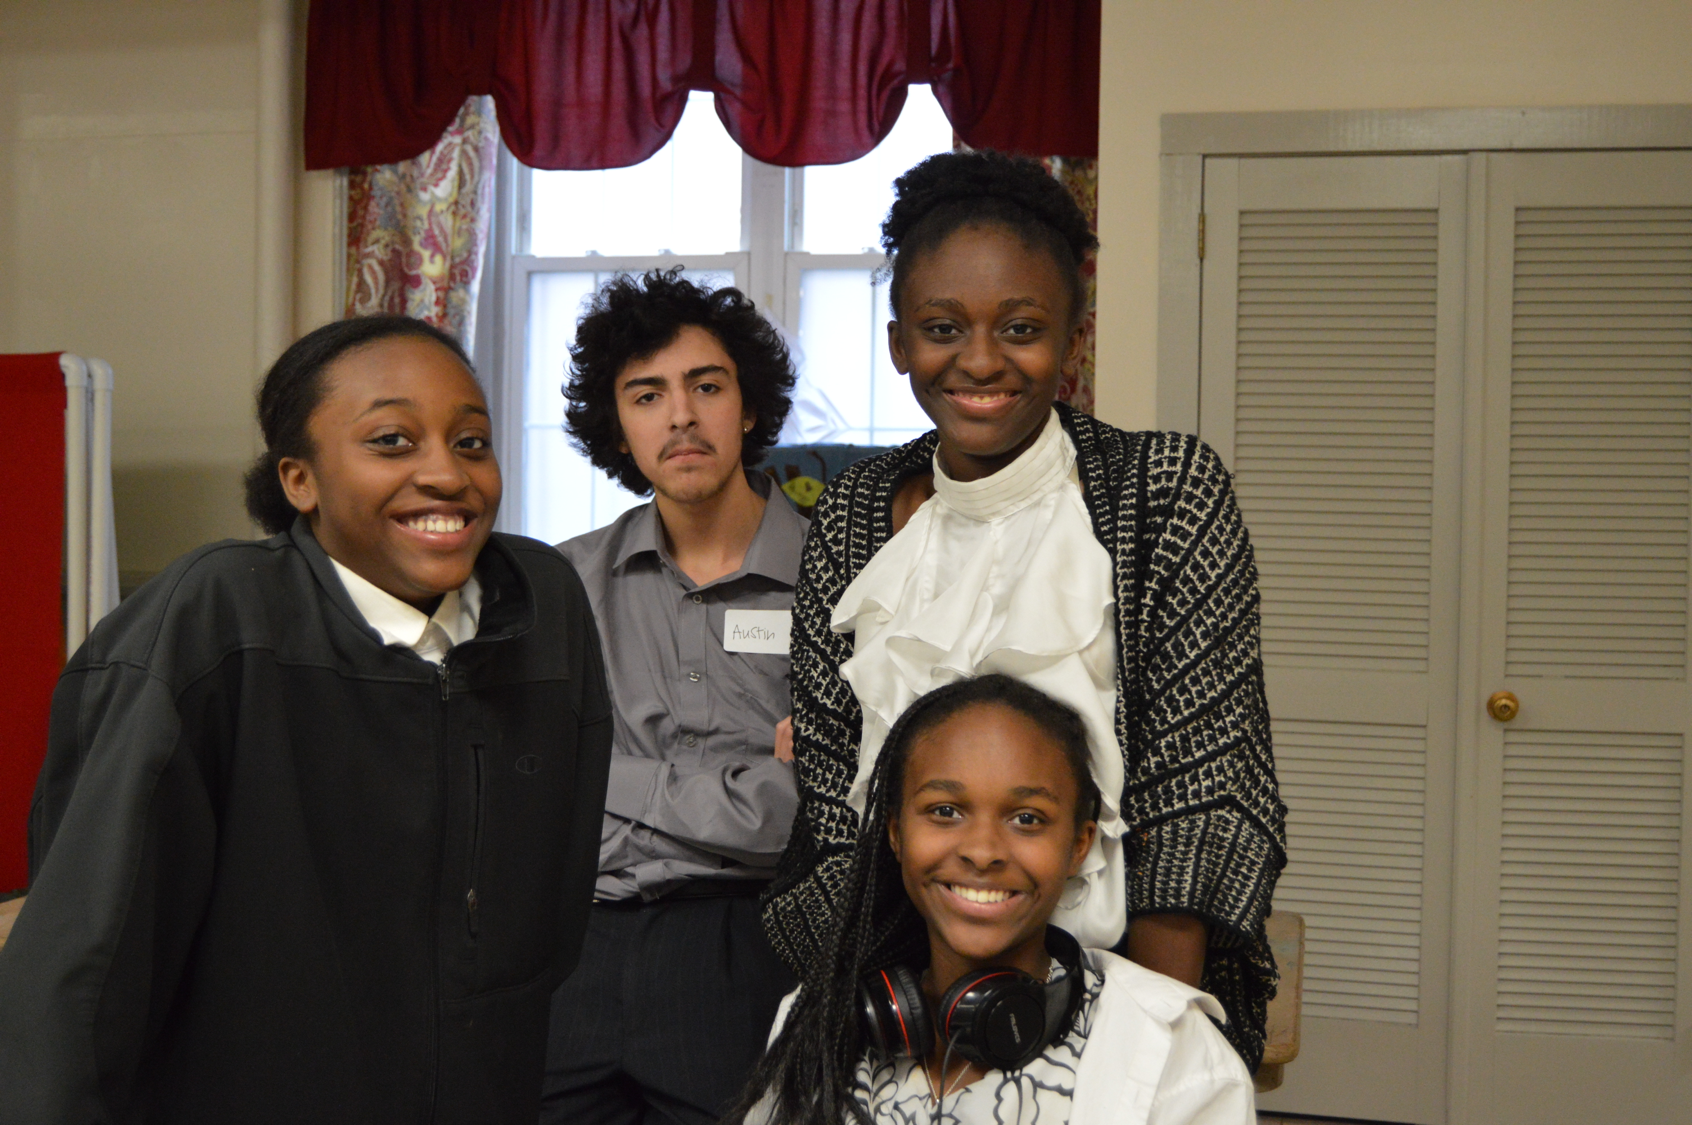 Giovana and her sisters, Giavaya and Giovonda, with their friend Austin at the 2018 MLK Concert